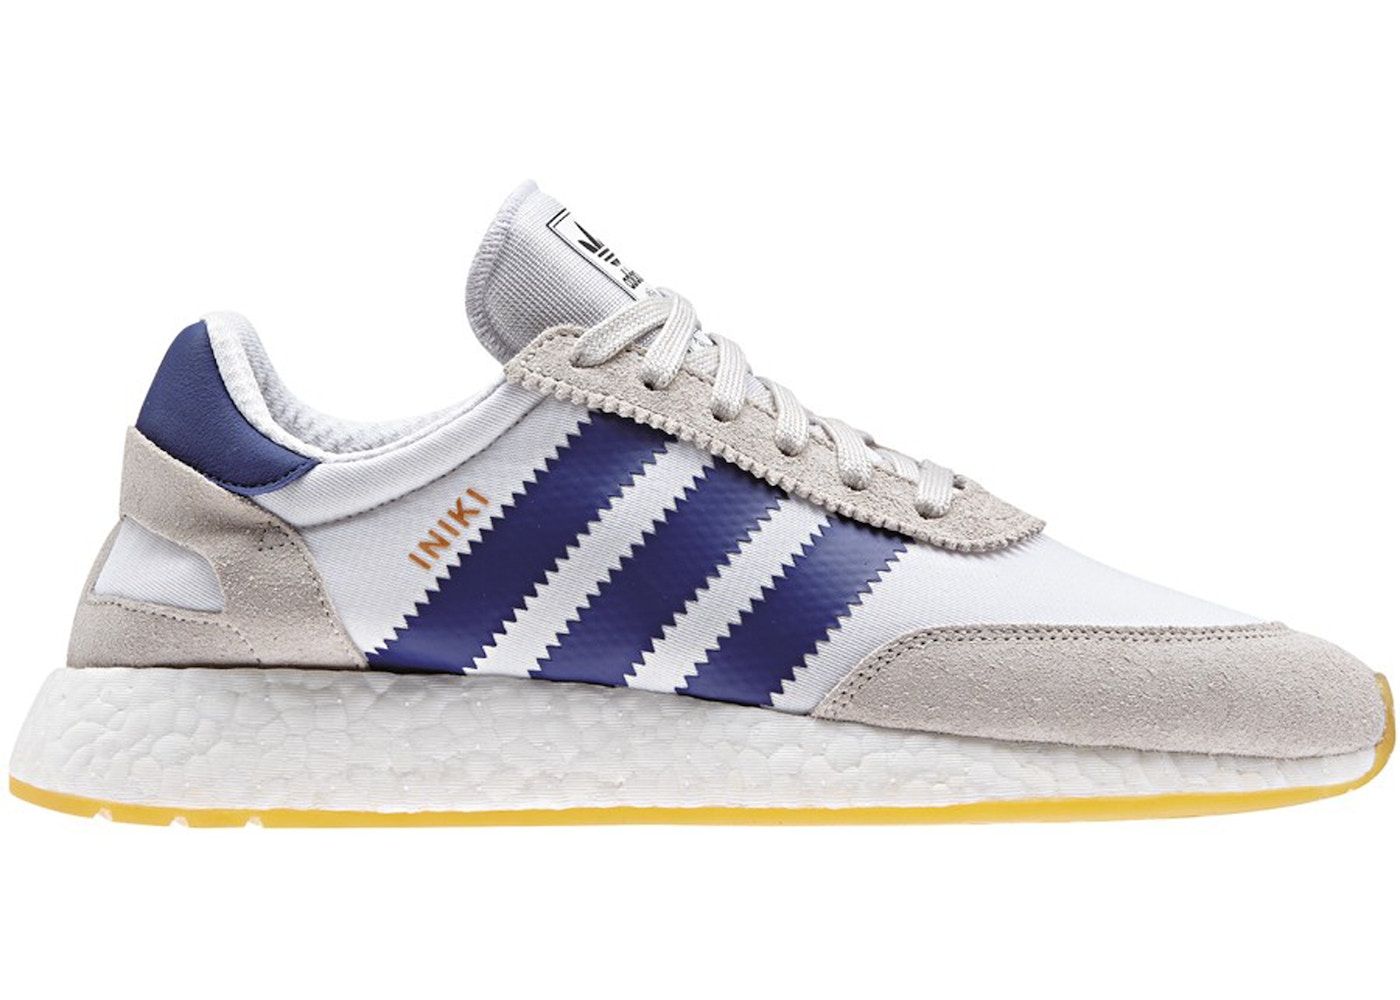 super popular 2fd0f 8a10a Buy adidas Iniki Shoes   Deadstock Sneakers